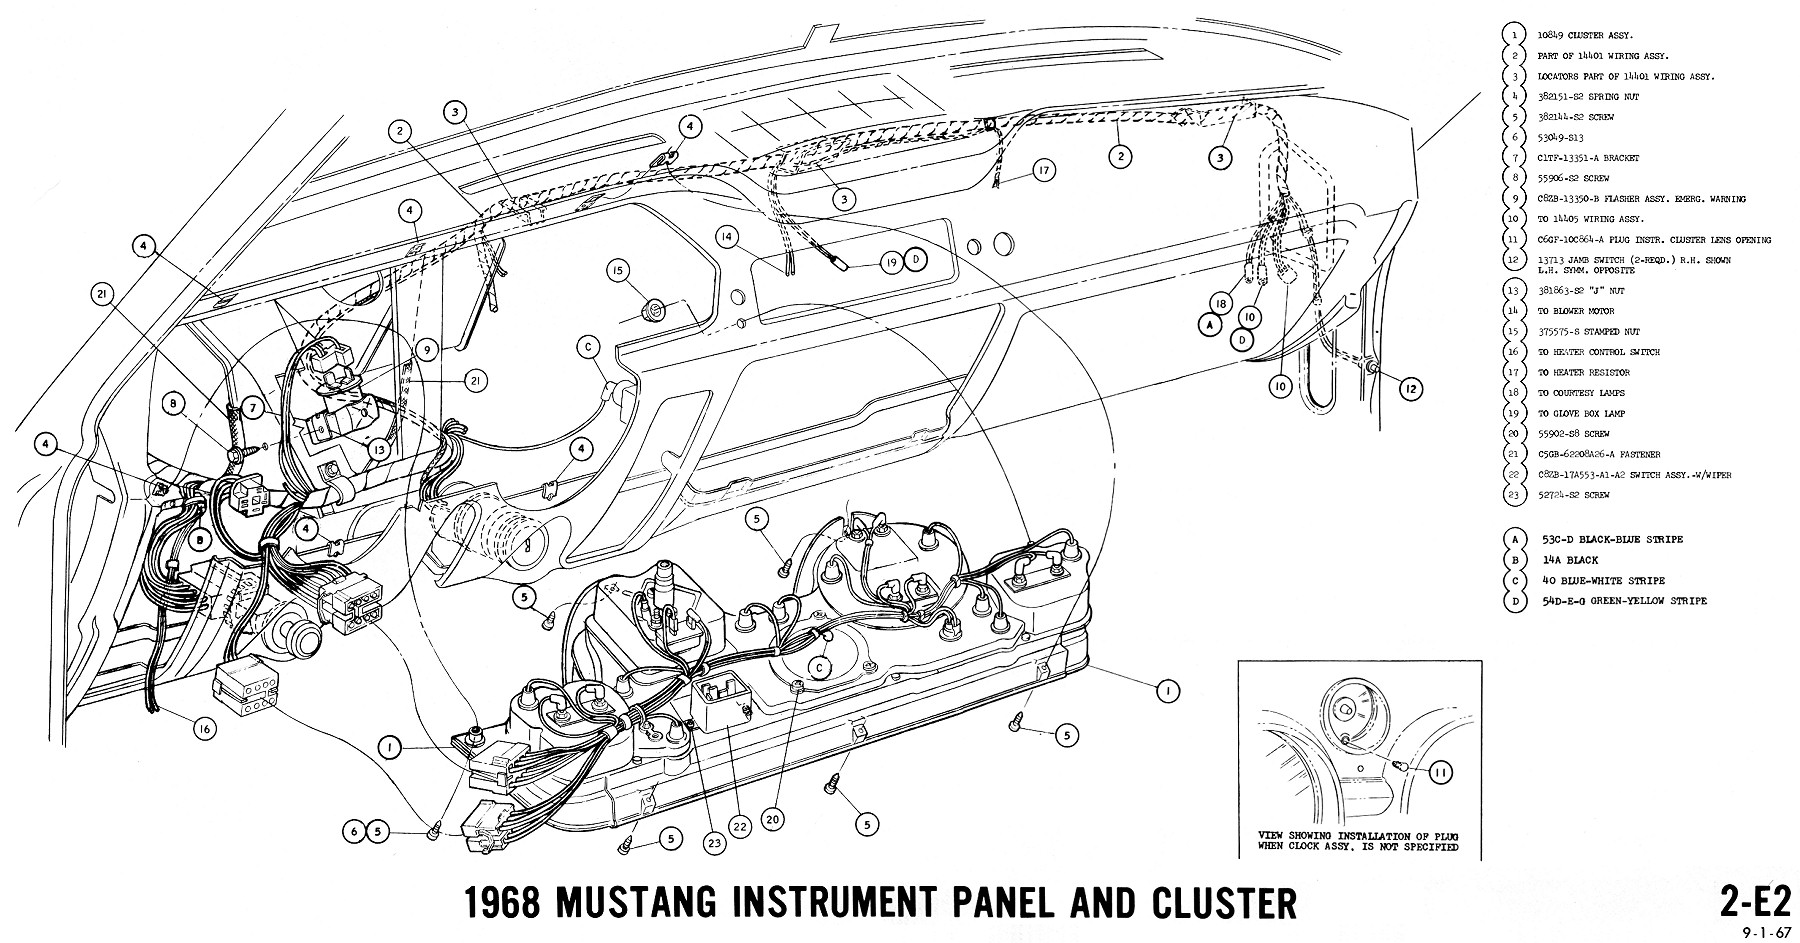 1967 ford mustang wire harness diagram enthusiast wiring diagrams \u2022 1965 mustang color wiring diagram 68 mustang dash wiring automotive wiring diagram u2022 rh nfluencer co 1967 ford mustang horn wiring diagram 1965 mustang wiring harness diagram